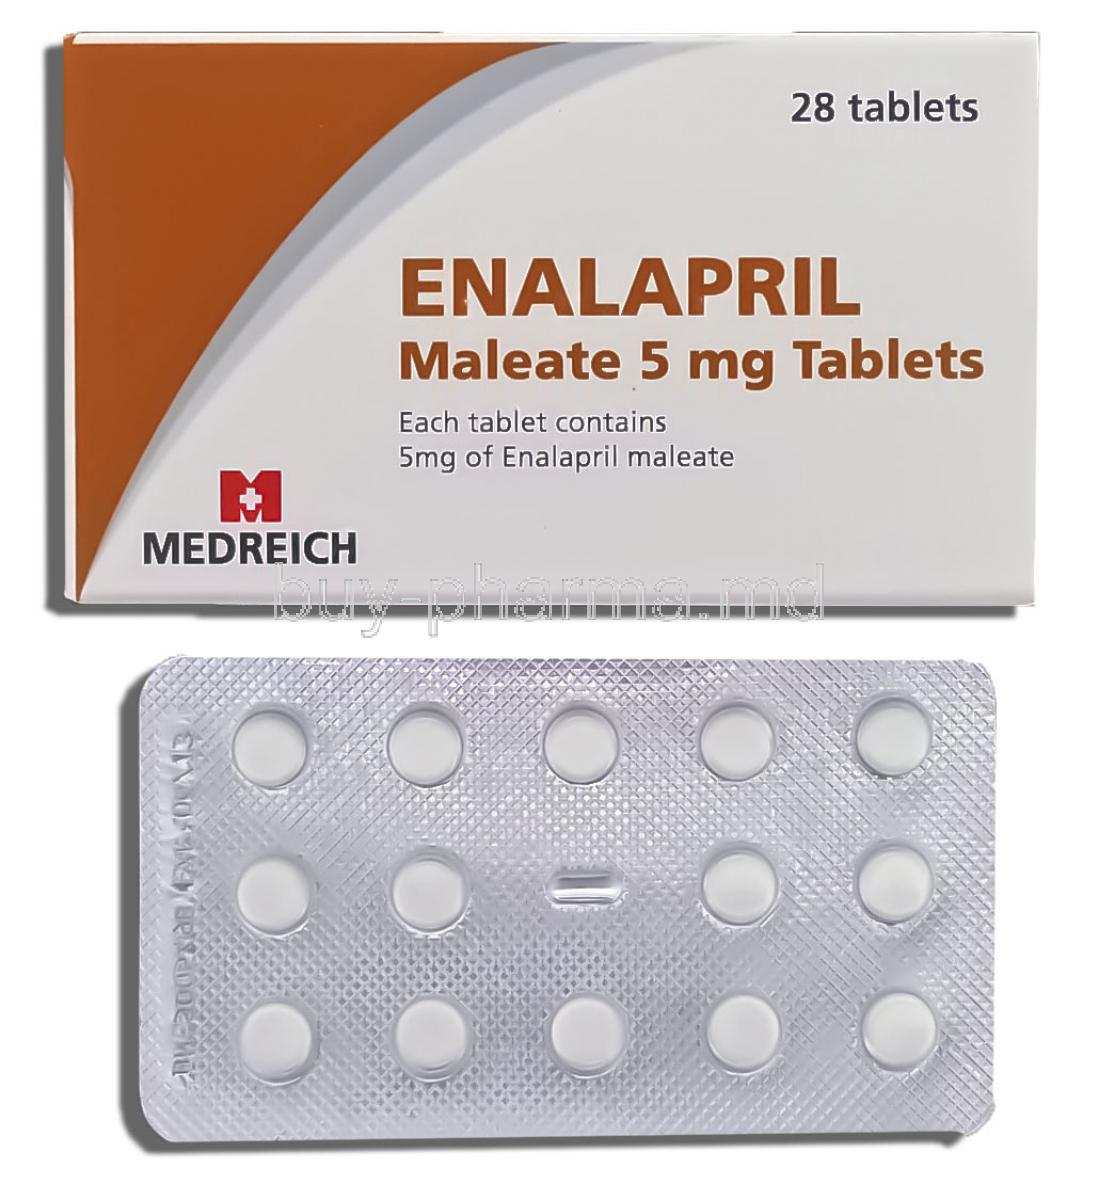 How To Buy Enalapril Online